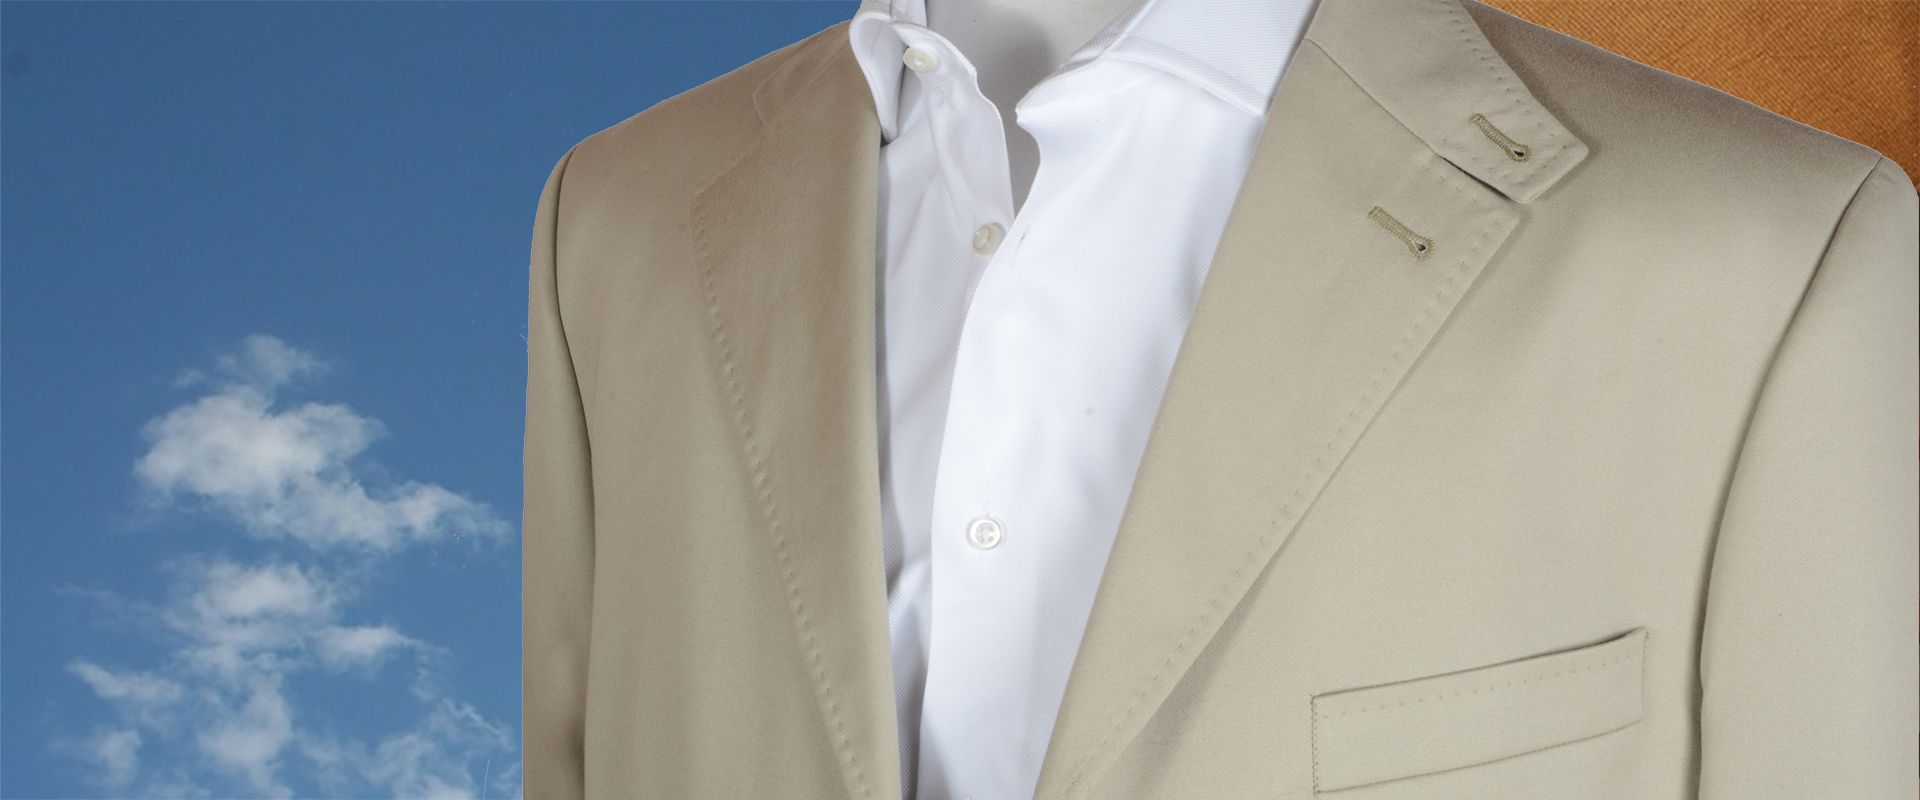 Cotton and Linen Jackets and Suits